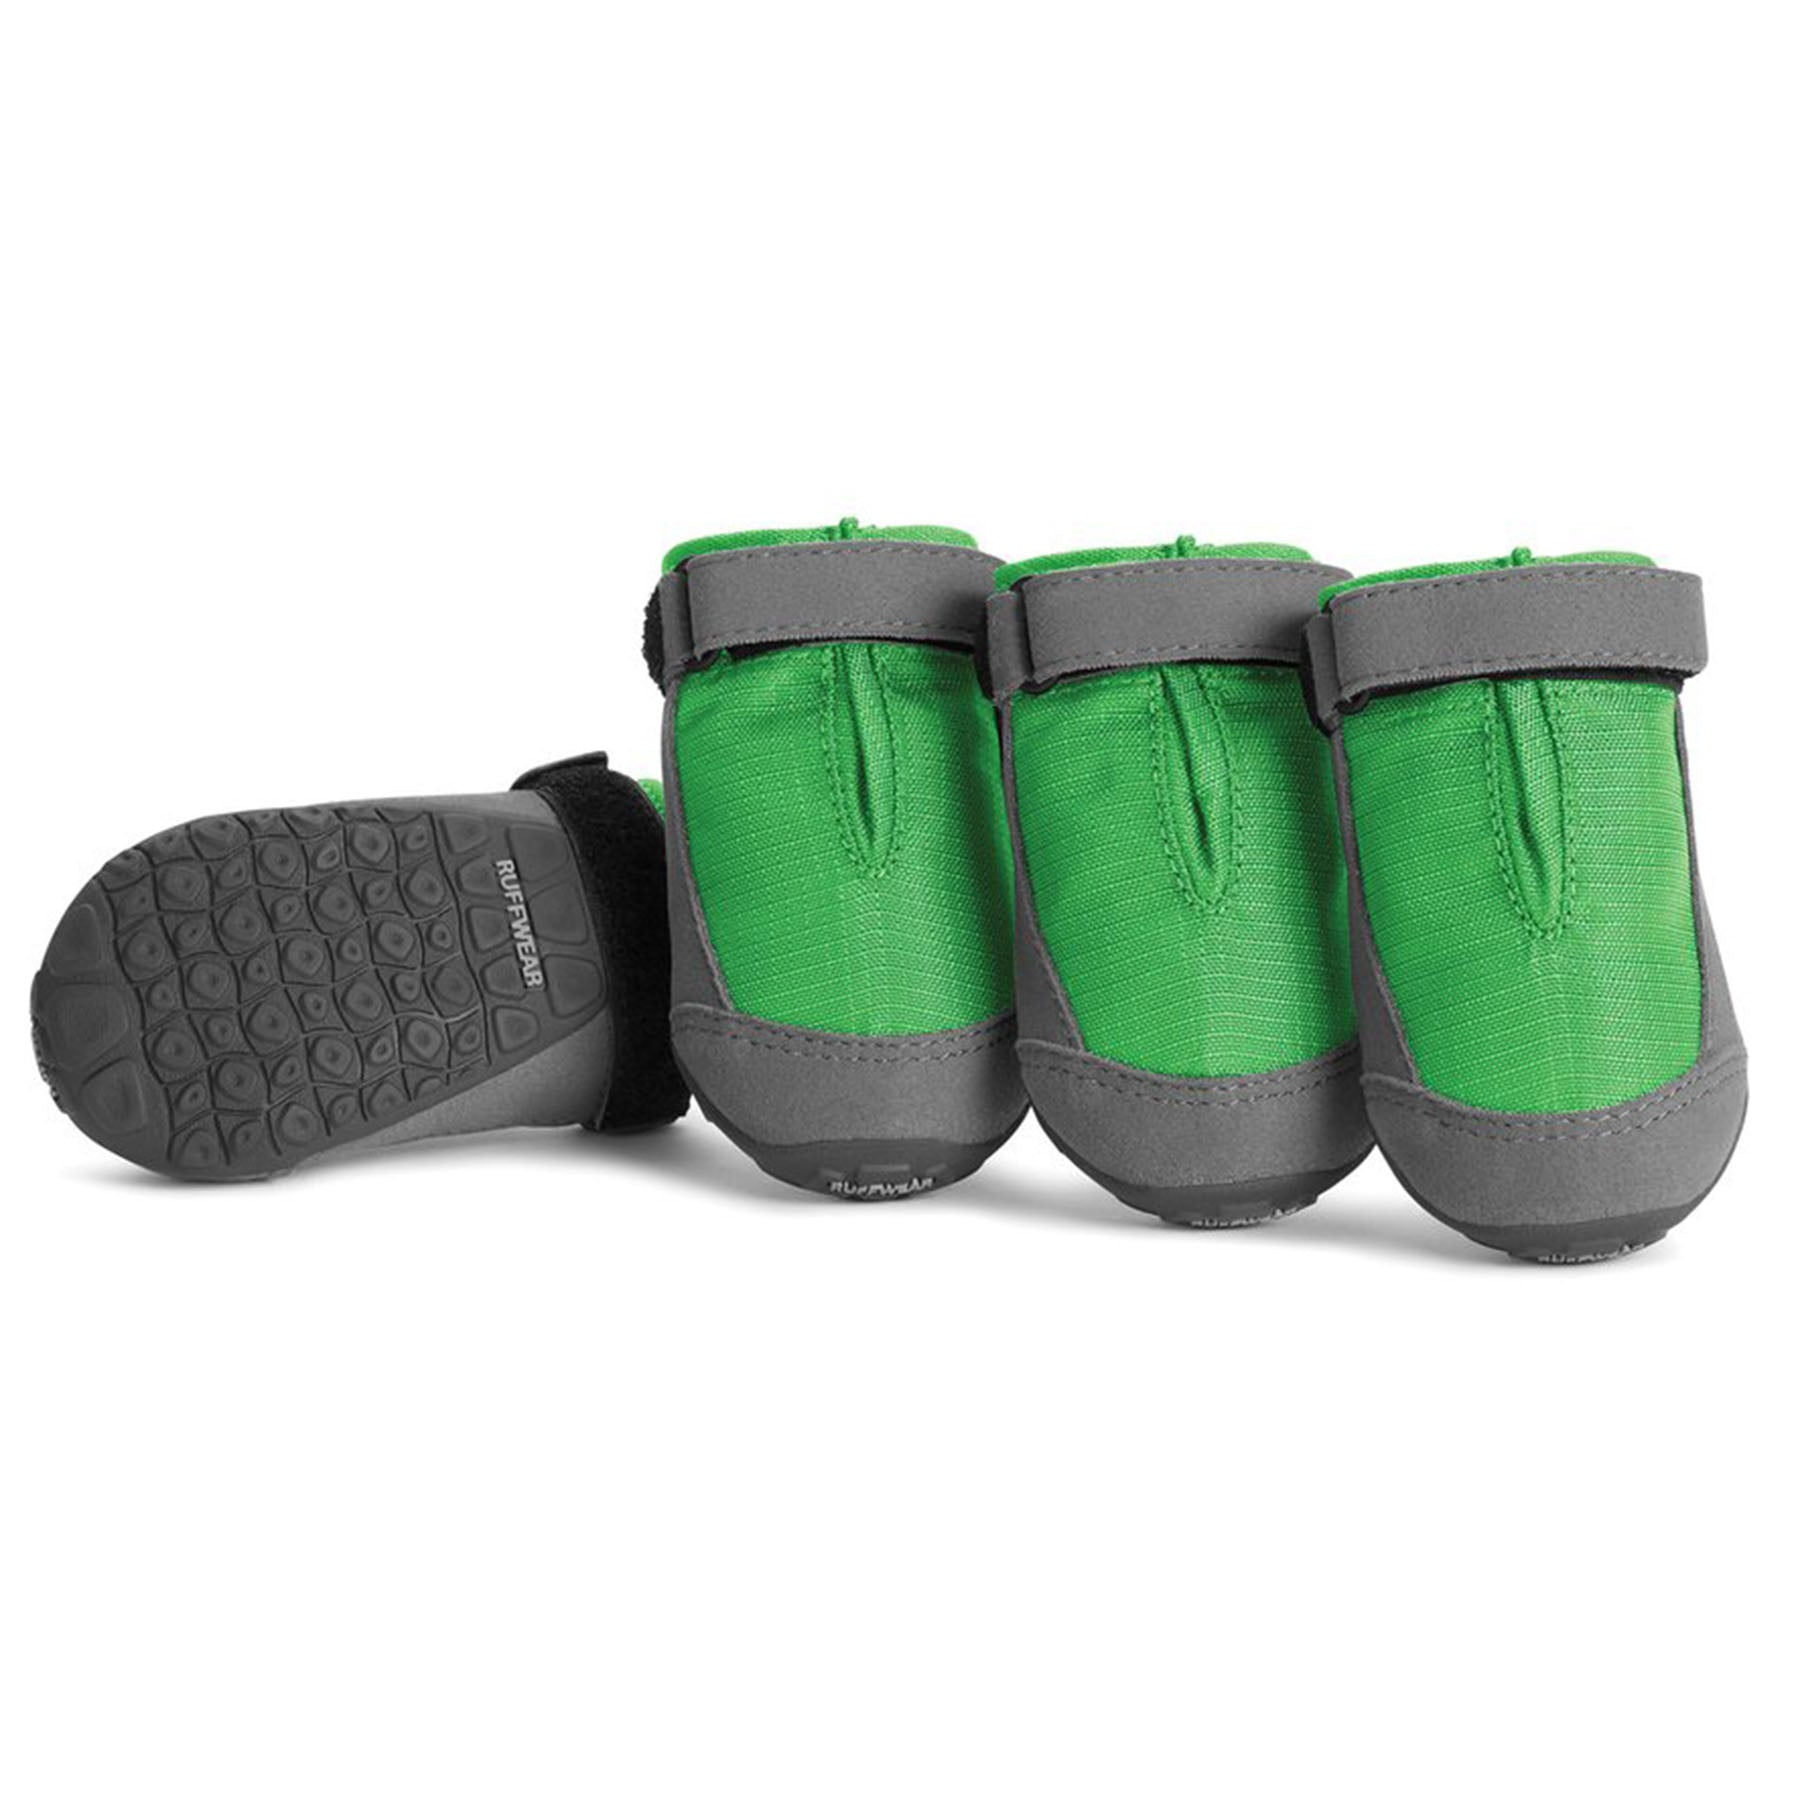 a photo of the ruffwear summit trex dog boot, in green. all four are in the photo